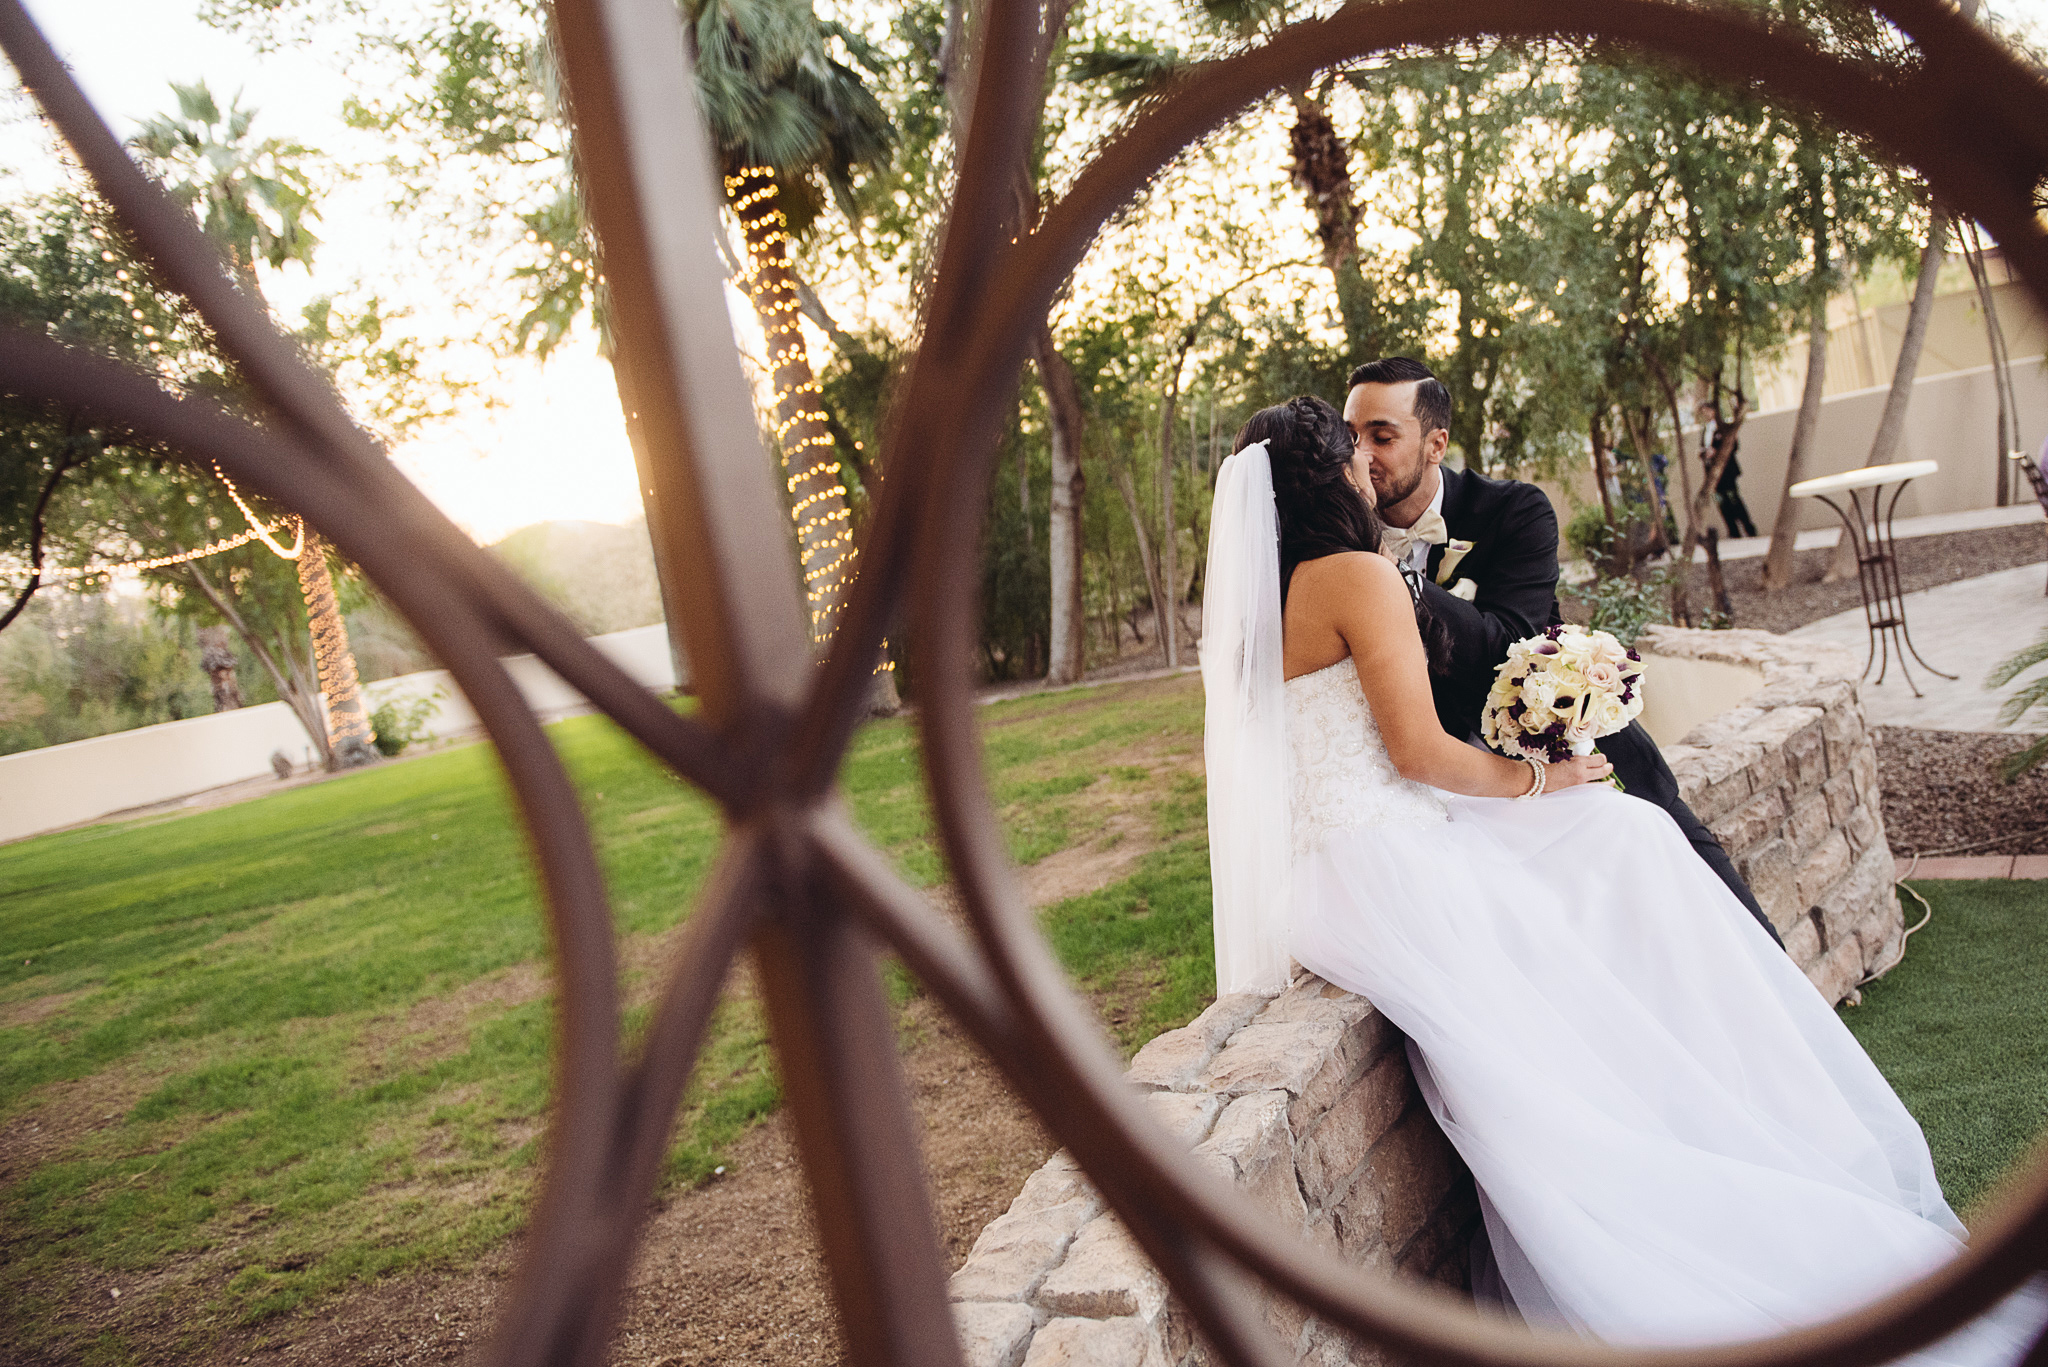 wedding-photography-az-andrew-ybanez-elemental-fotos-gilbert-arizona-17.jpg